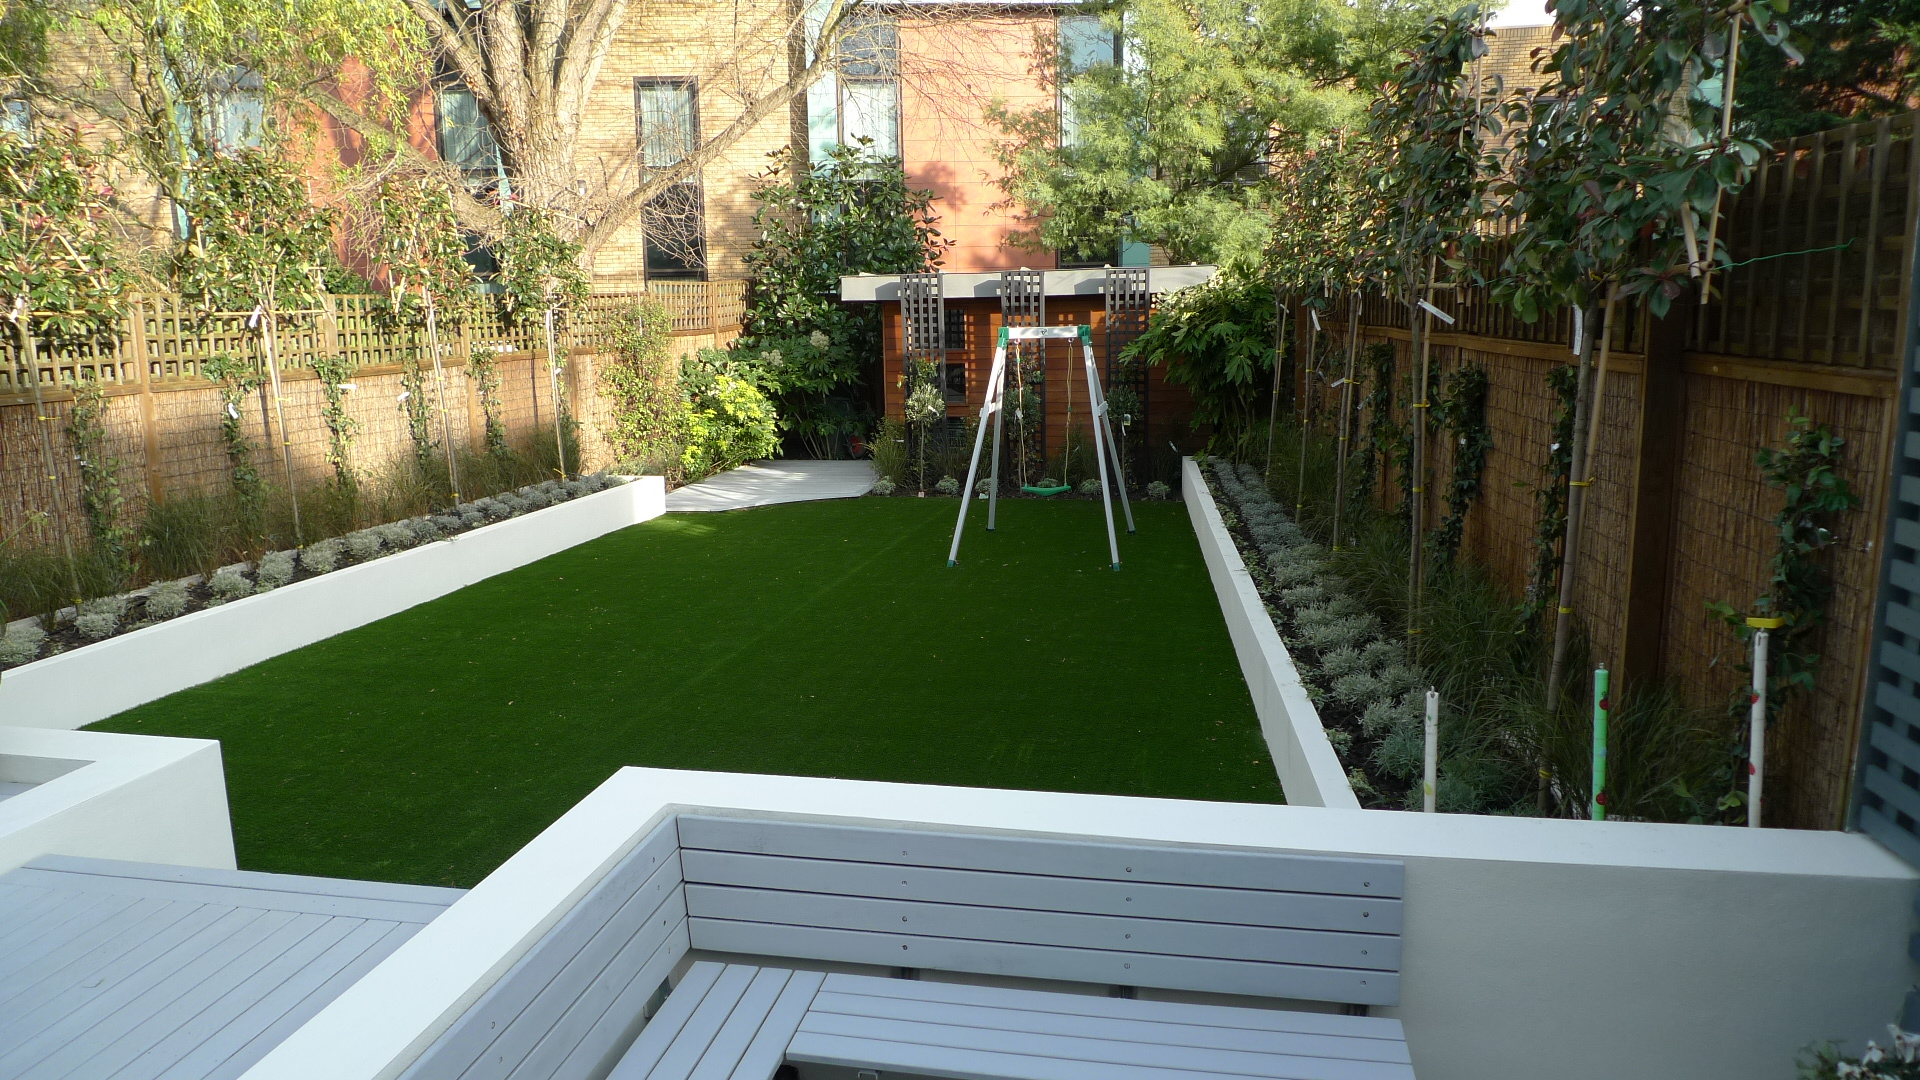 garden design ideas london photo - 3